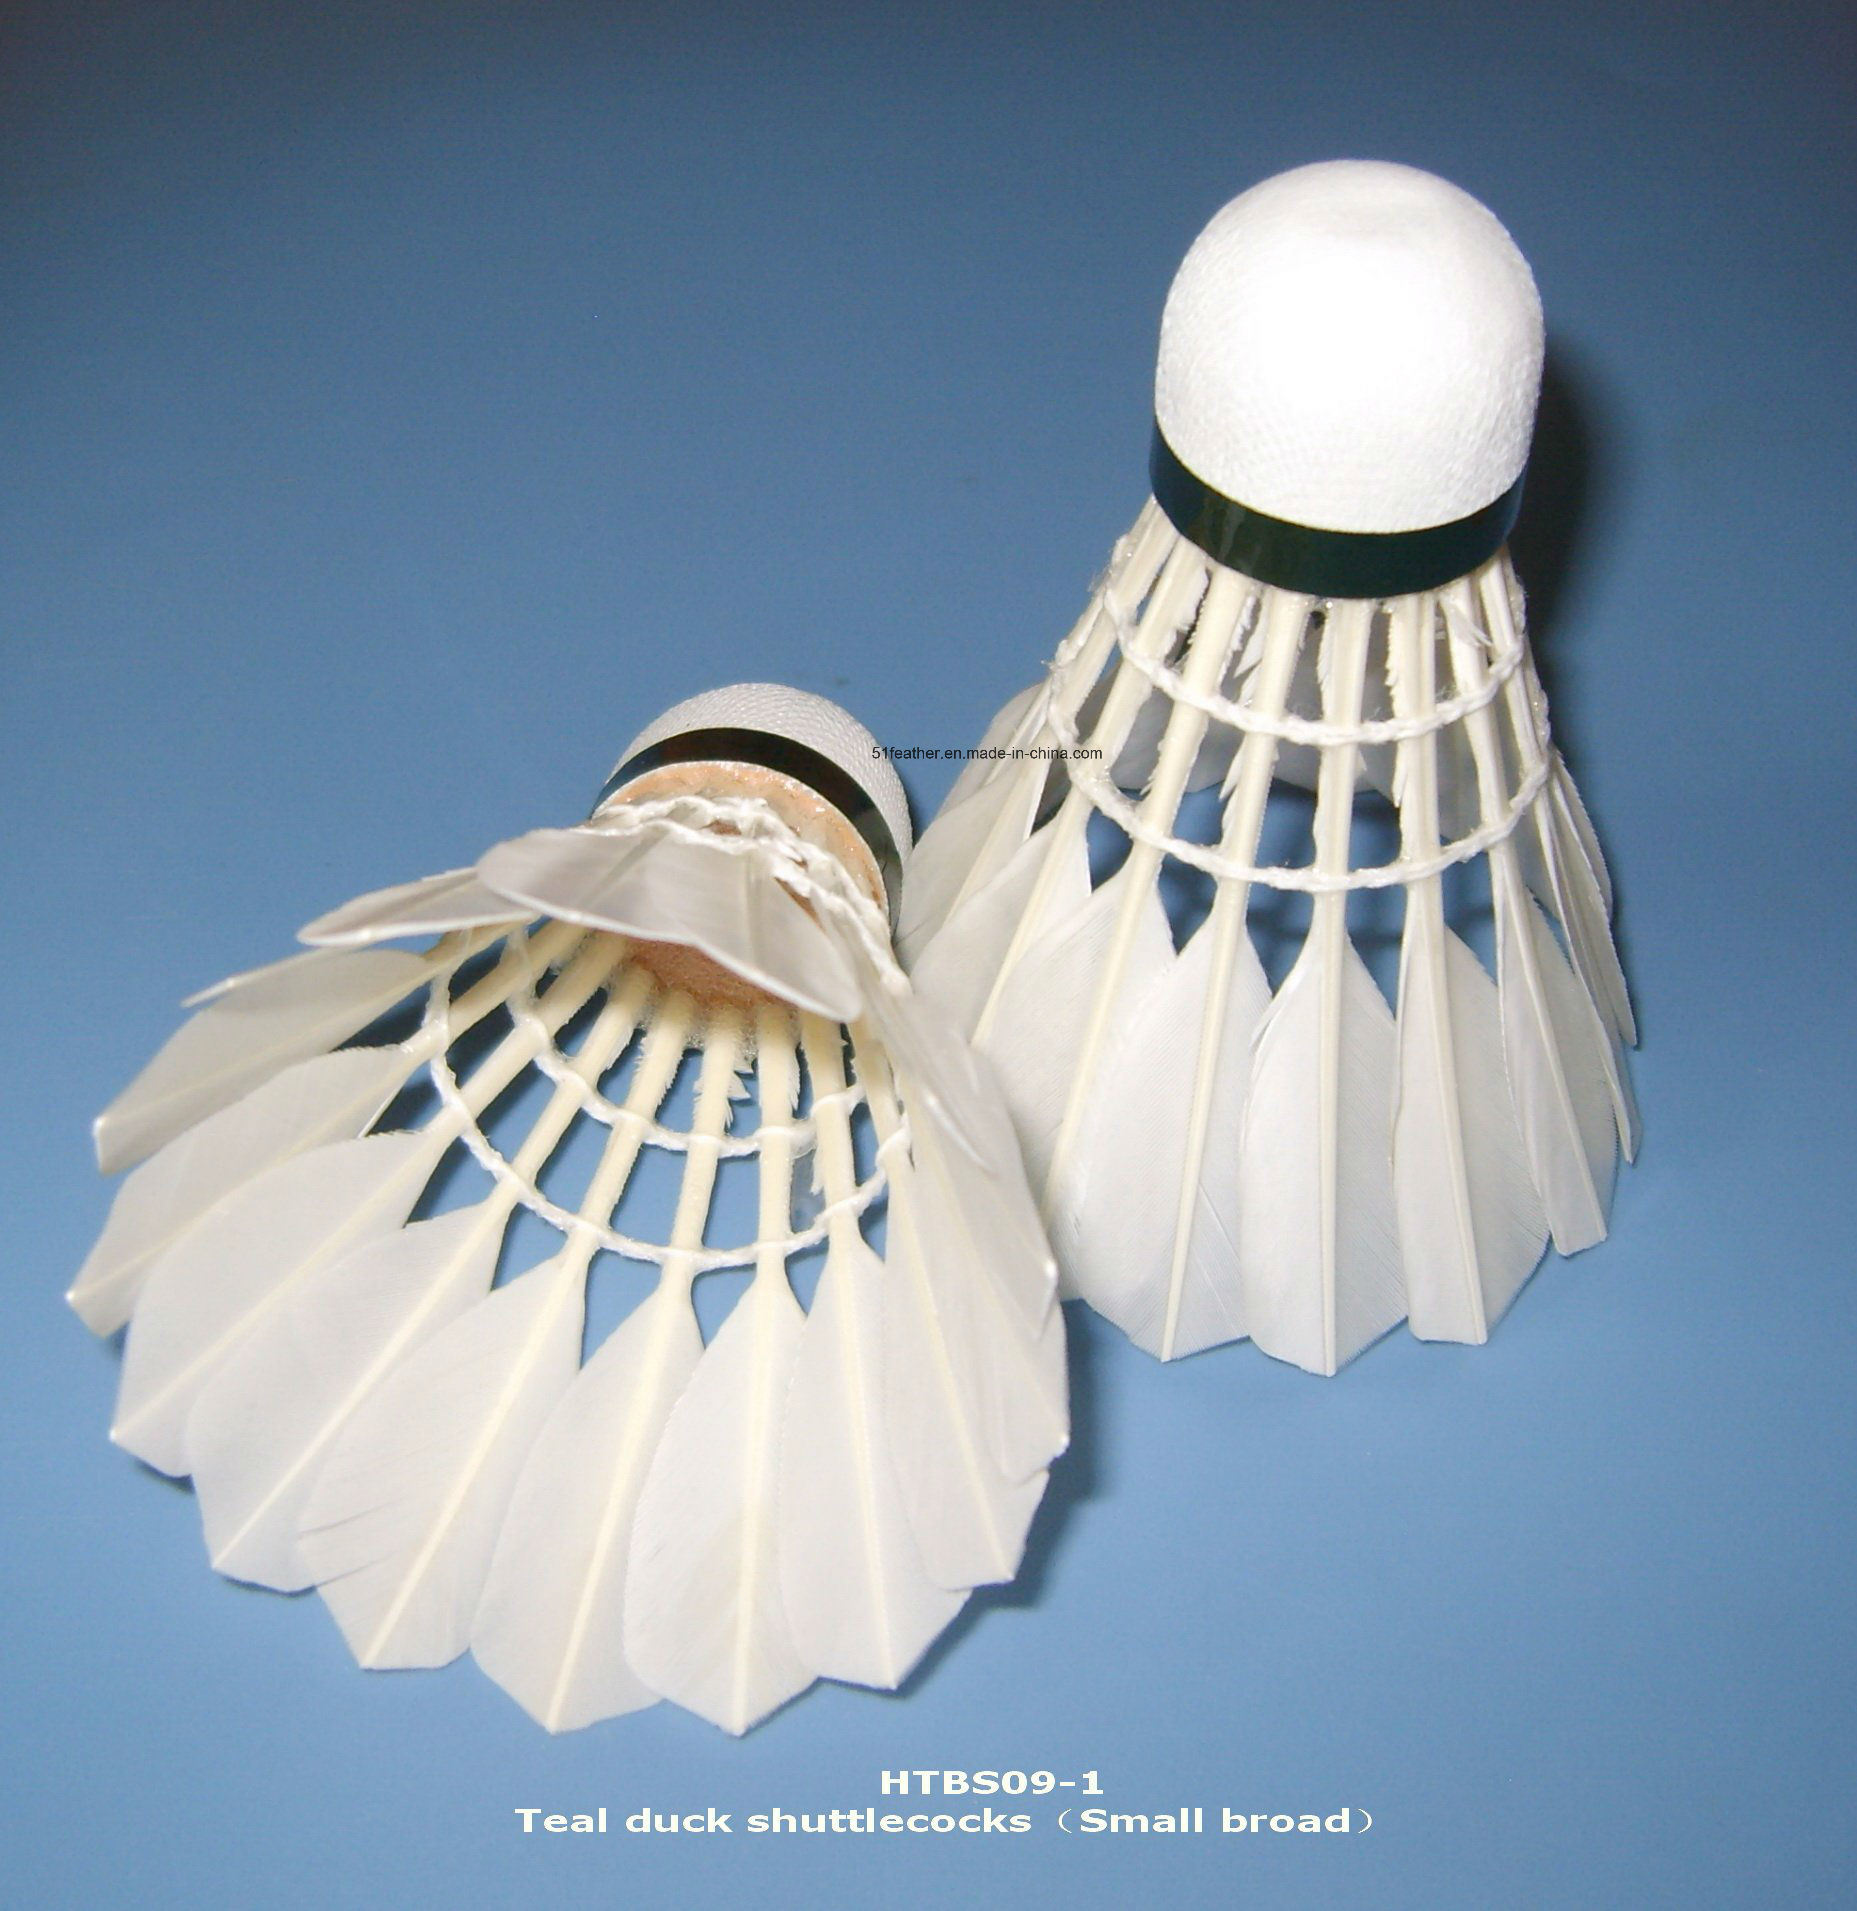 Goose/Duck Feather Badminton Shuttlecocks with 3 Layers Cork Wood Head